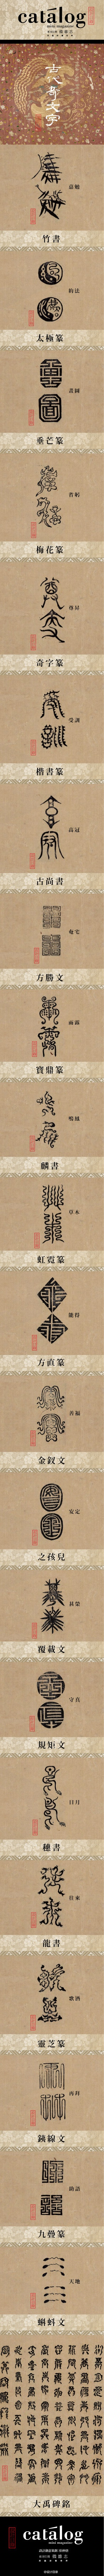 ✍ Sensual Calligraphy Scripts ✍ initials, typography styles and calligraphic art - 古代奇文字 Evolution of ancient Chinese characters